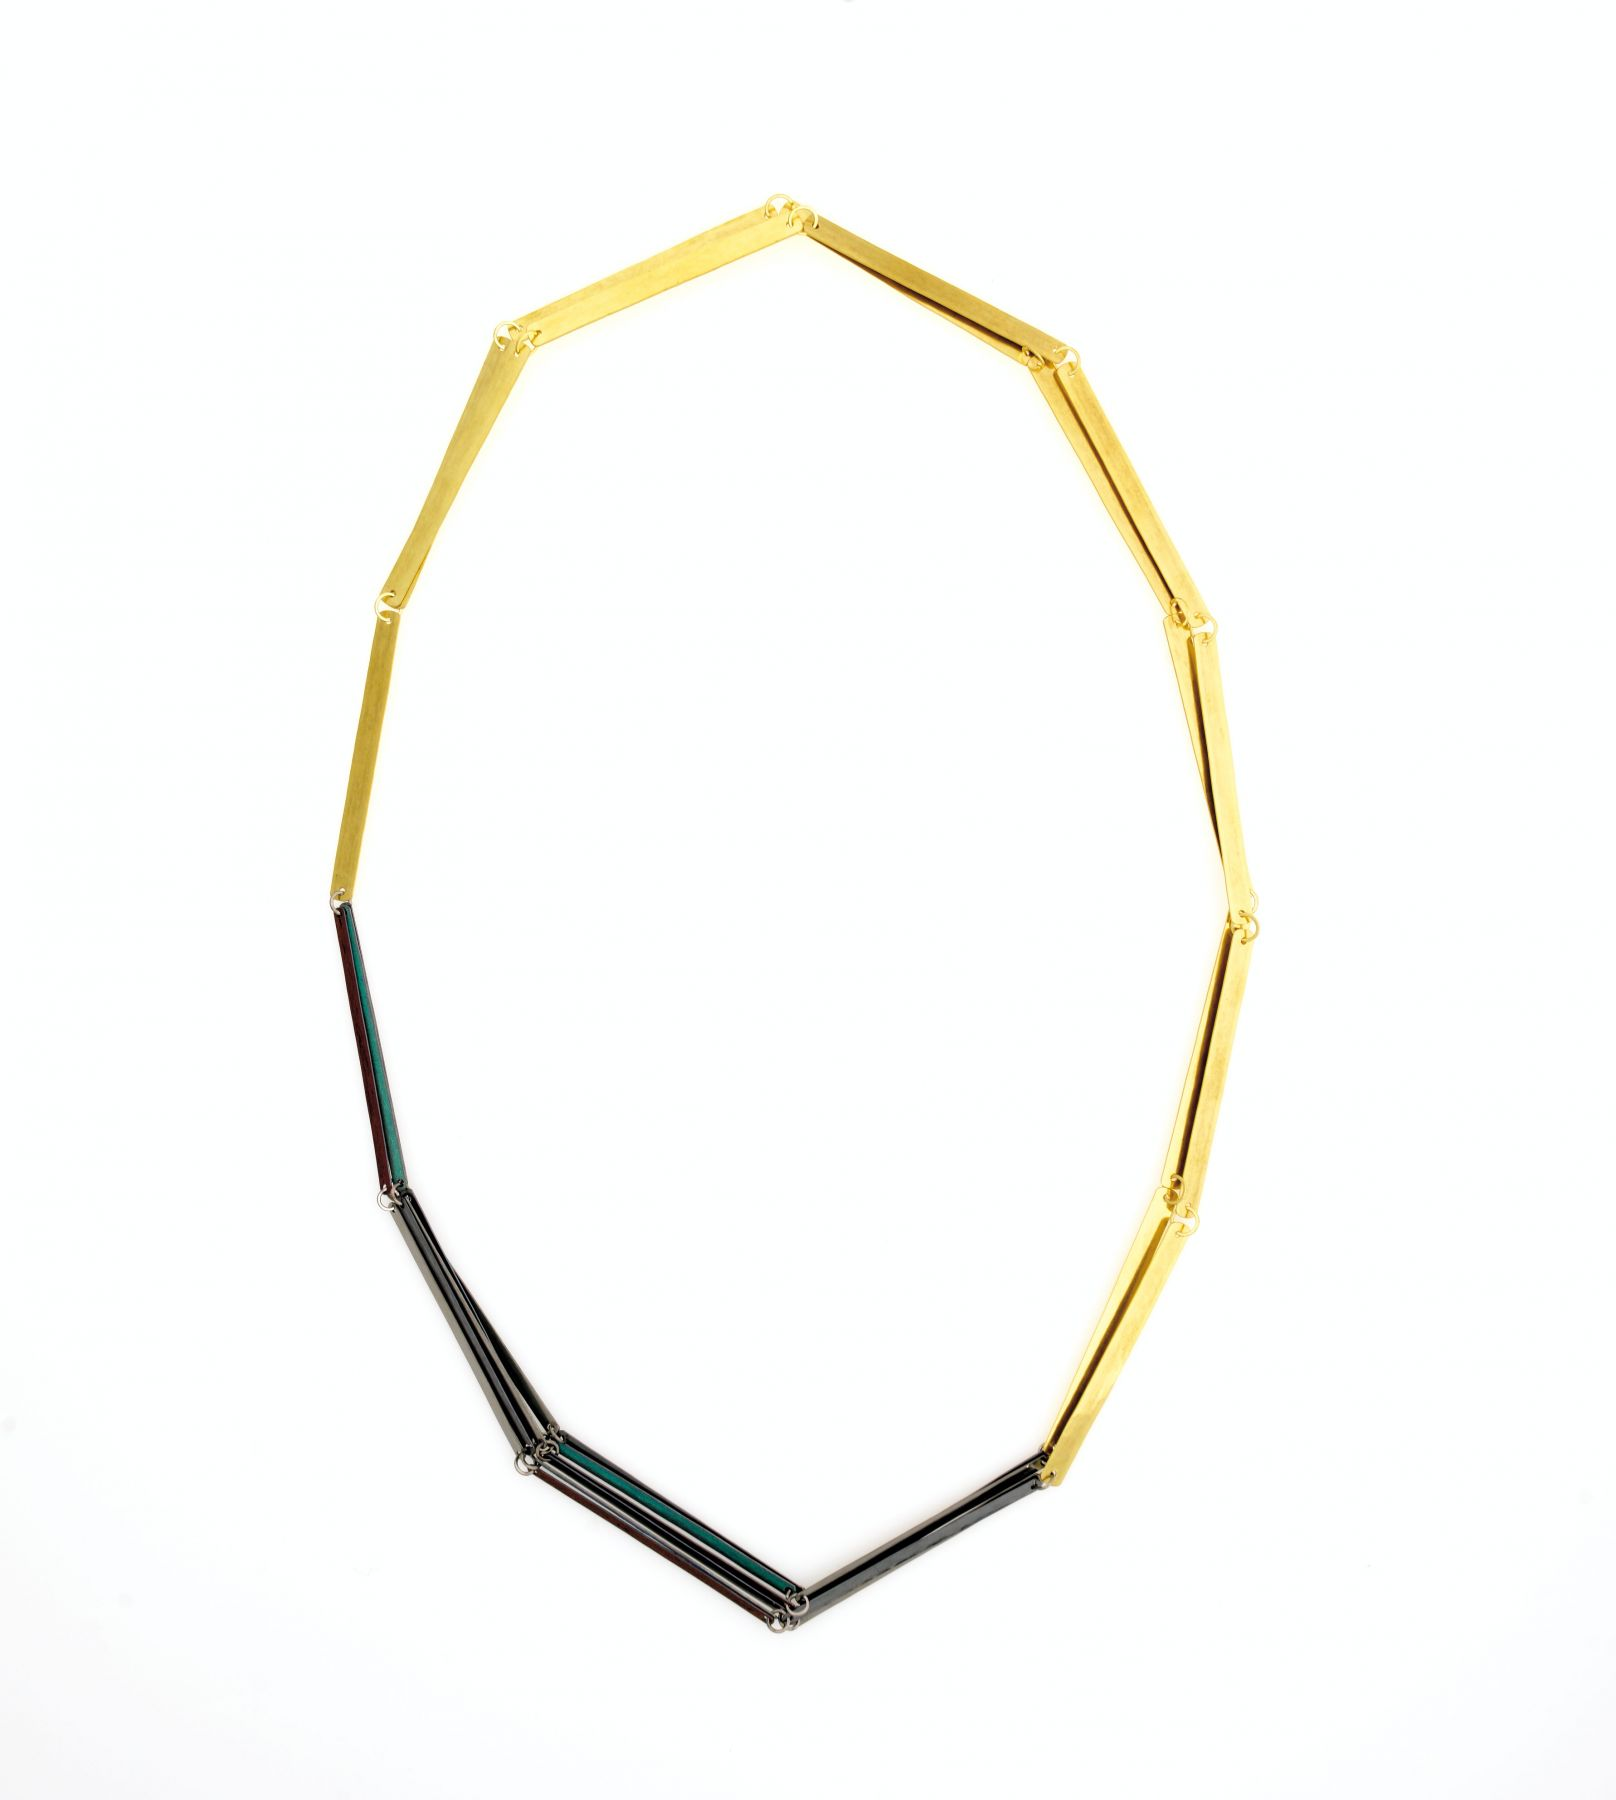 Annelies Planteydt Necklace